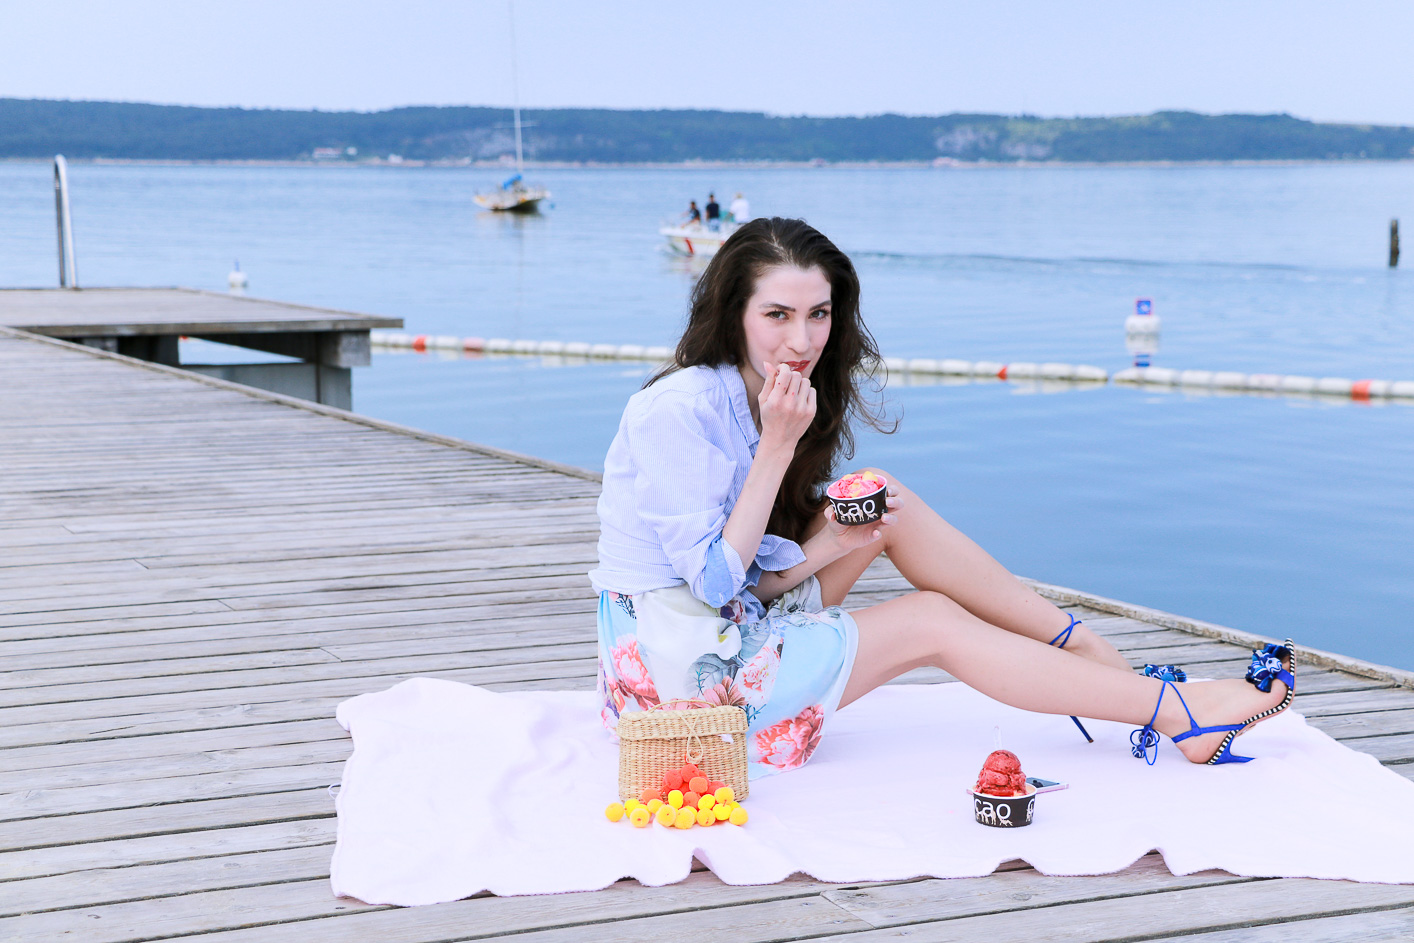 Fashion blogger Veronika Lipar of Brunette From Wall Street having first summer picnic on the wooden pier wearing floral summer dress, a shirt with a knot and raffia basket bag